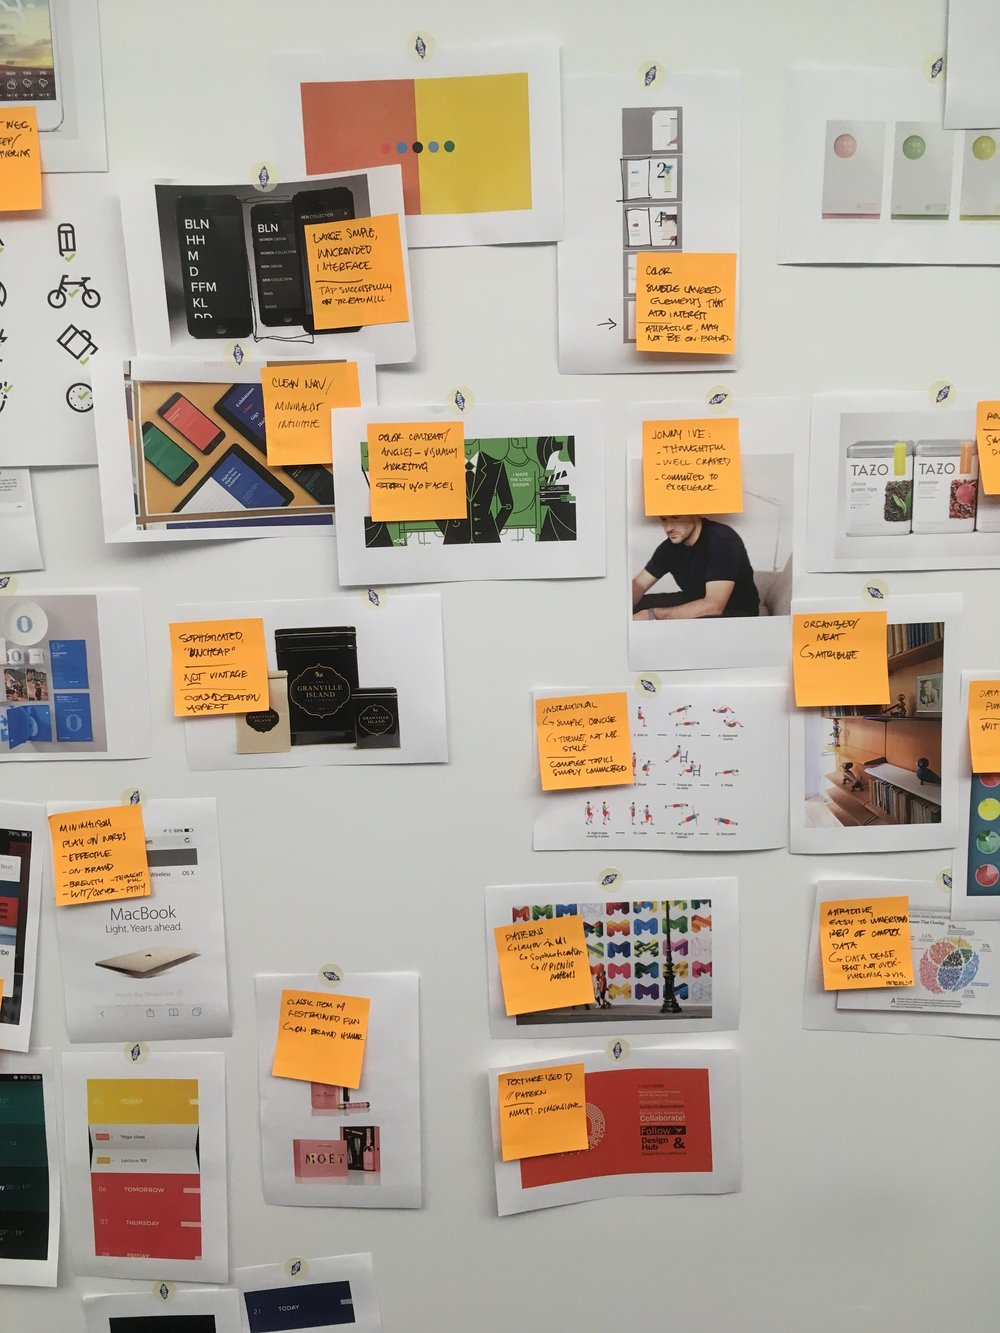 We use a range of tools, including image benchmarking, to help teams hone in on visual, verbal, tonal and conceptual ideas to drive projects forward.